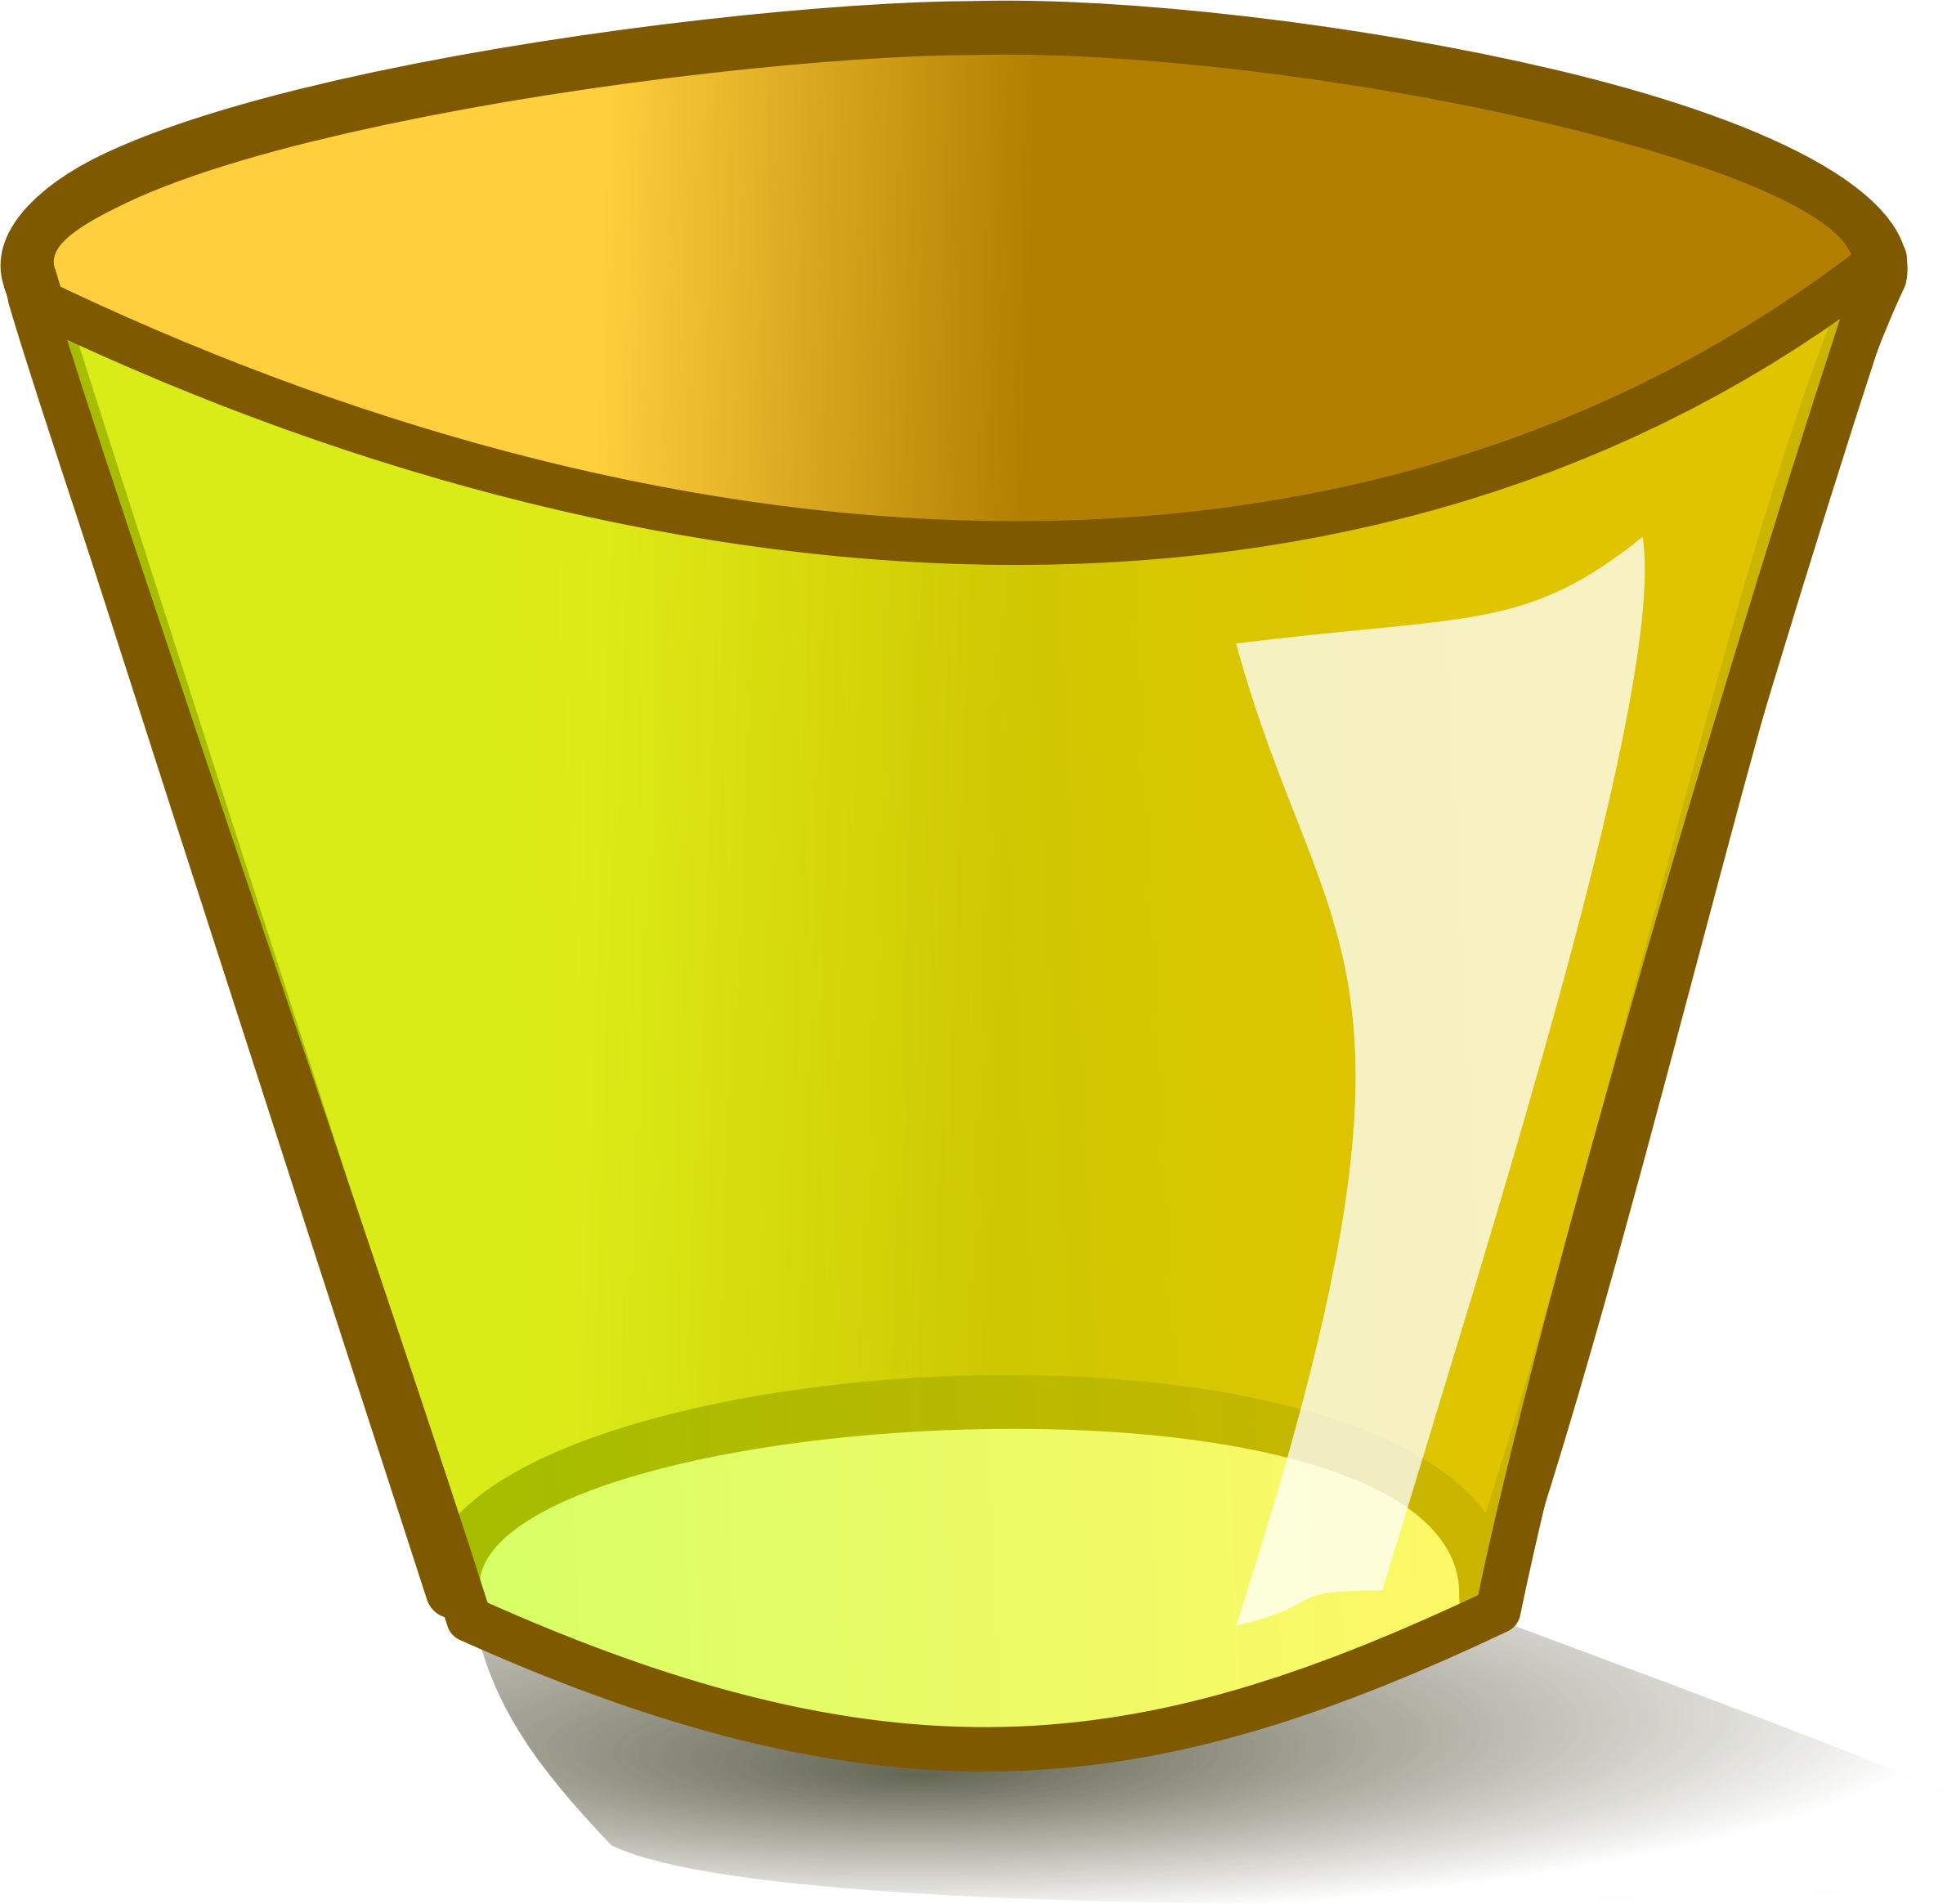 jpg Trashcan clipart empty. Big image png